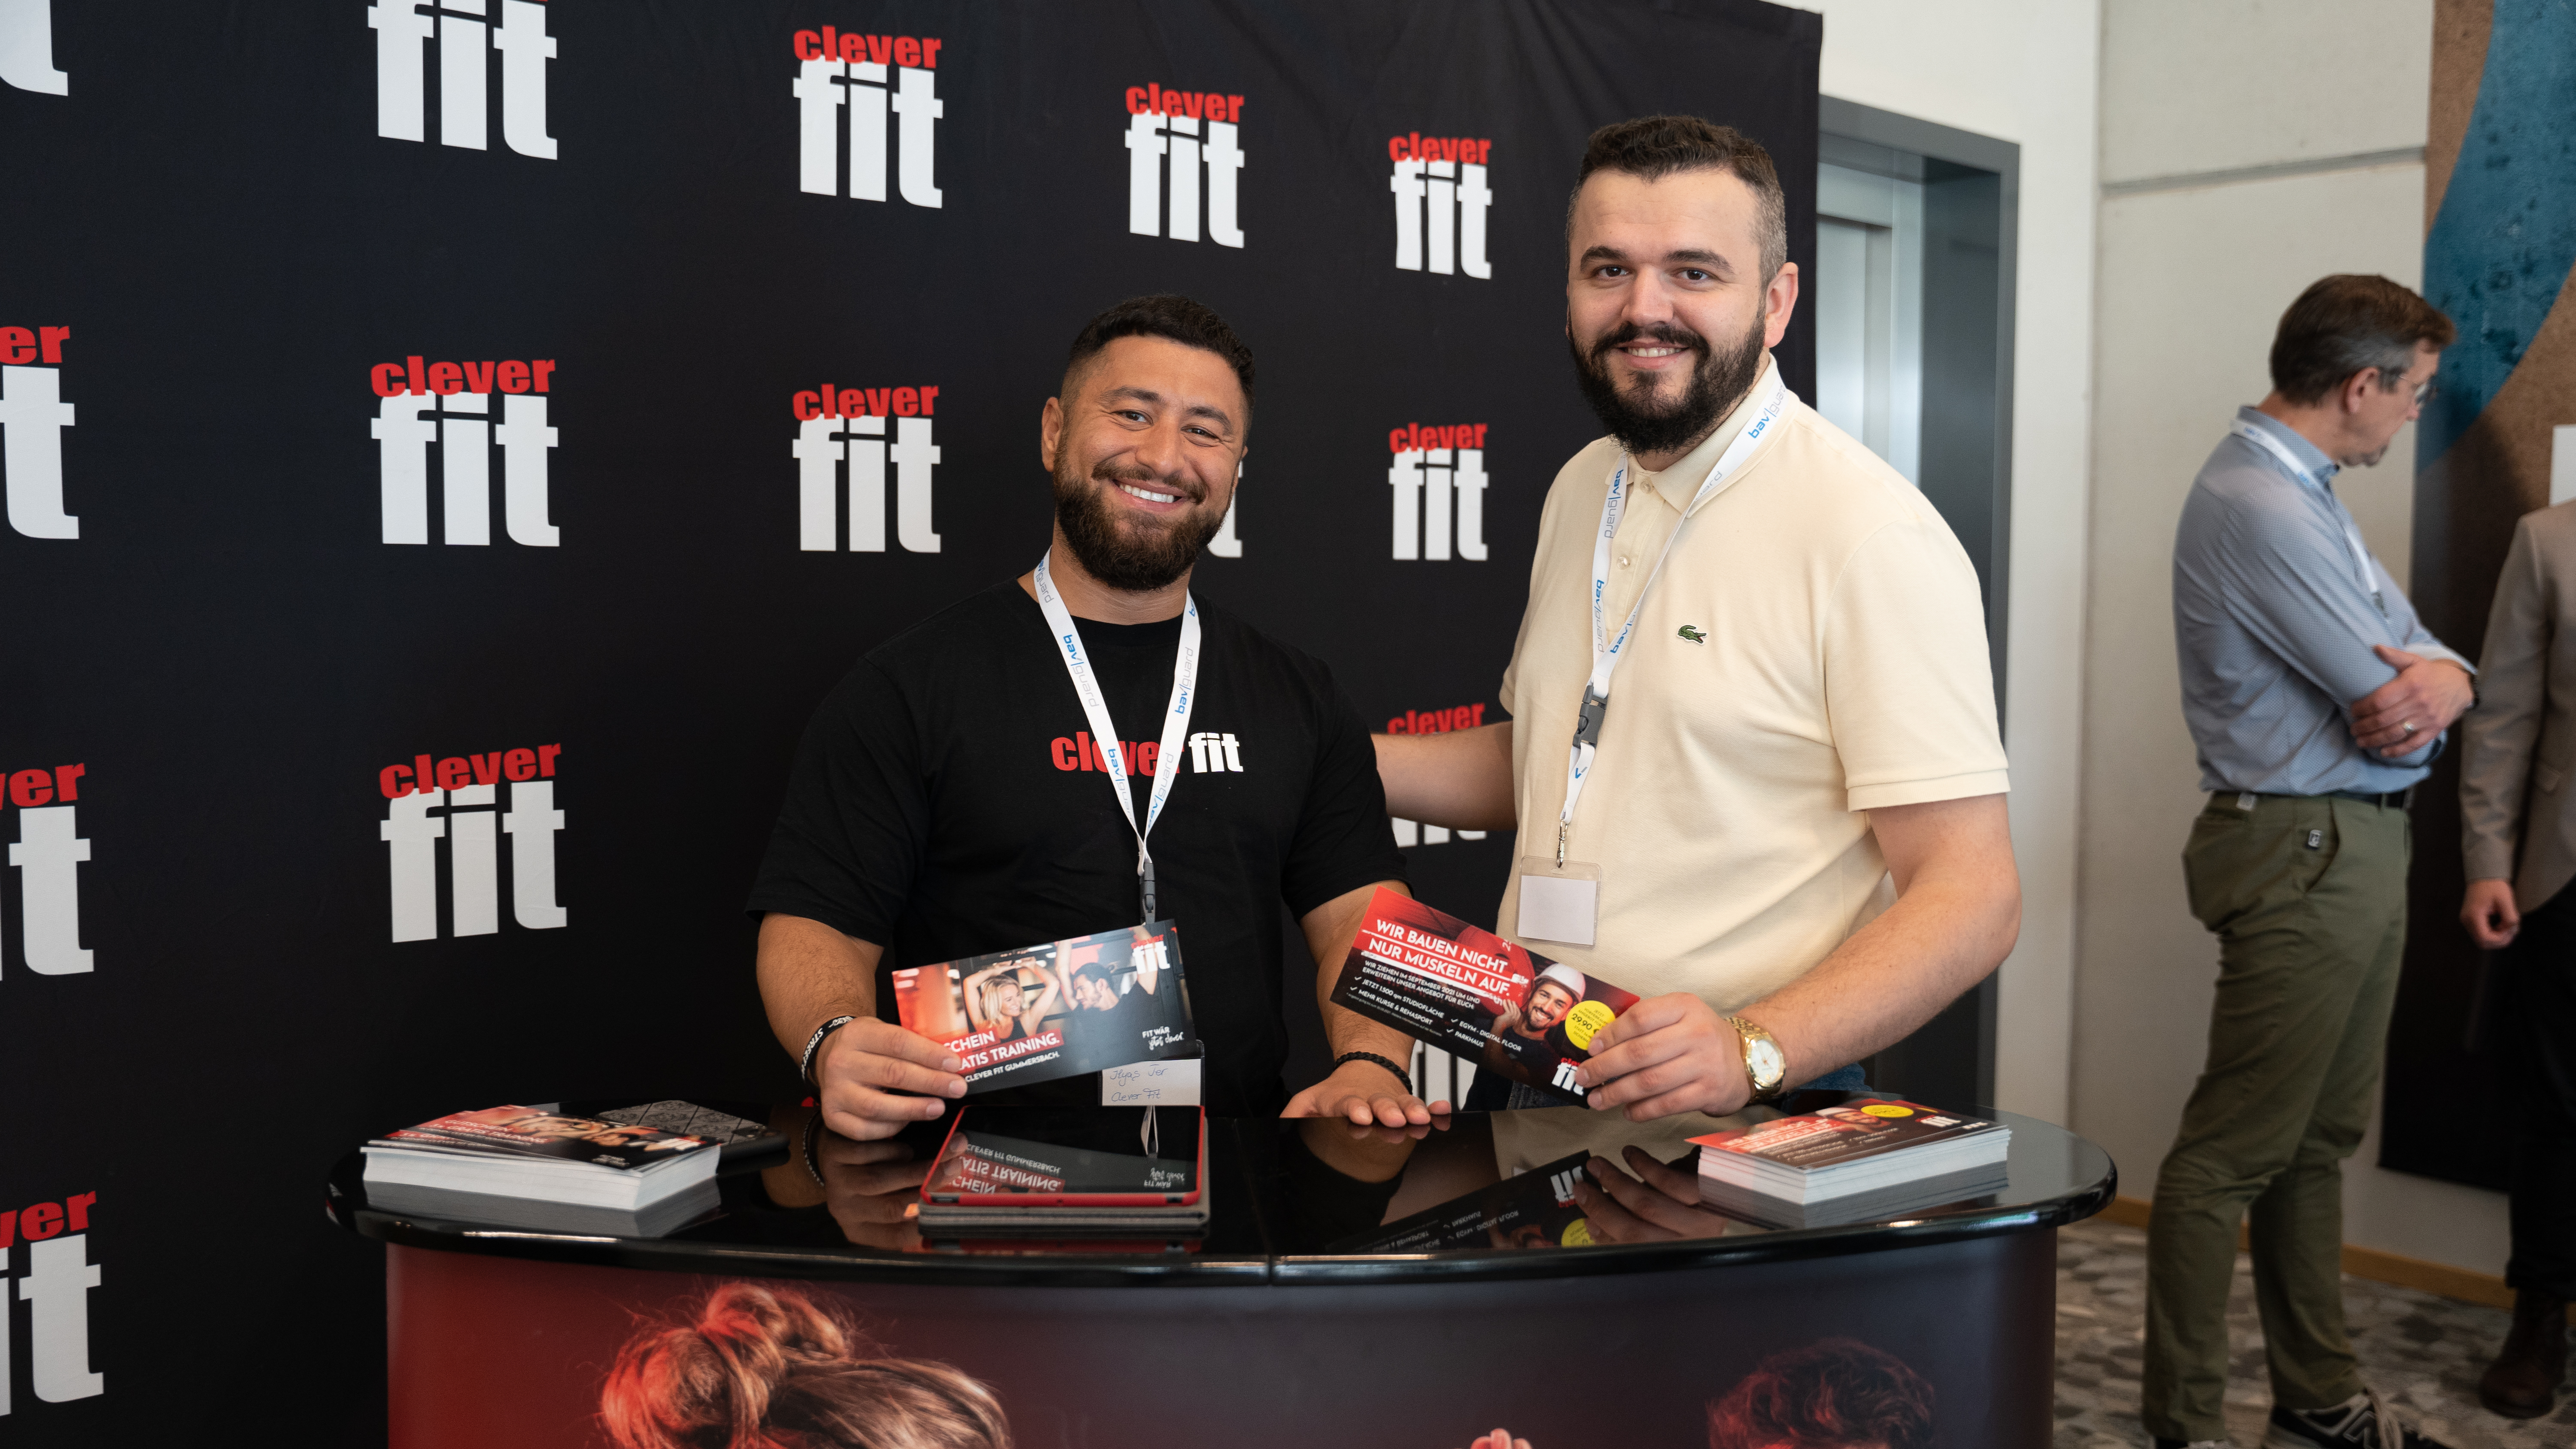 Cleverfit Stand